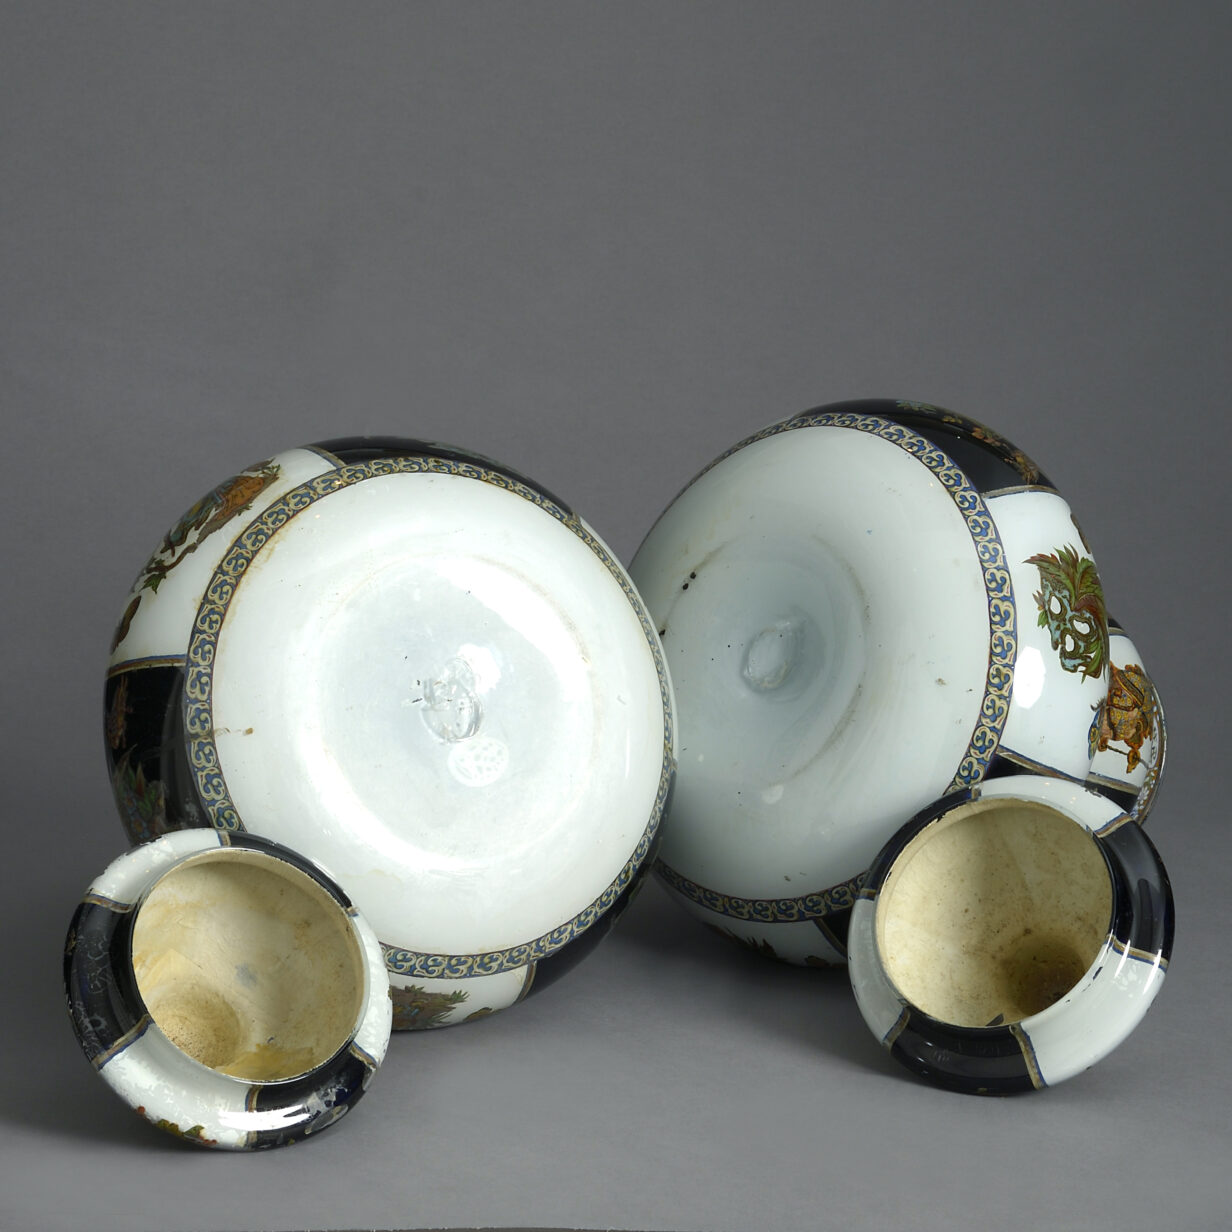 Pair of Decalcomania Gourd Vases